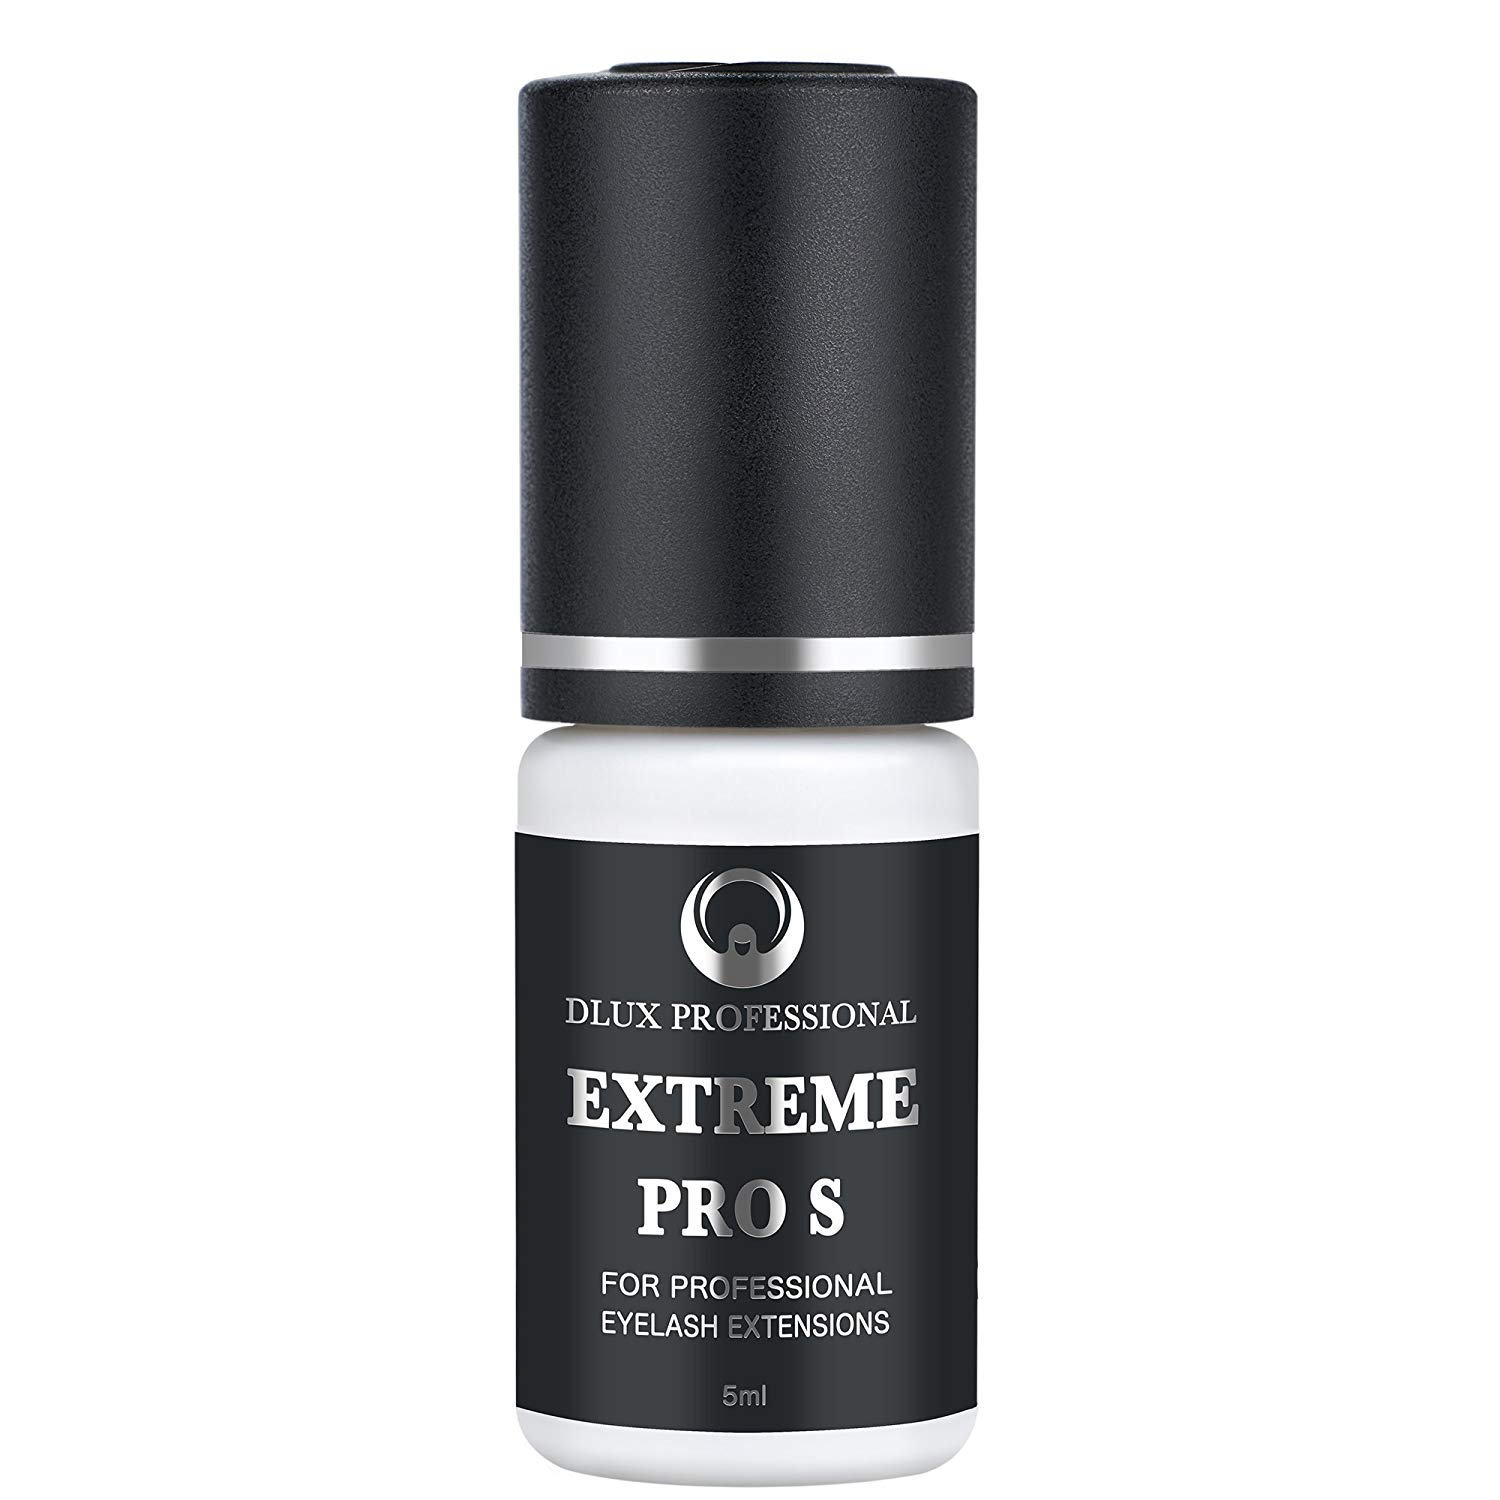 Dlux Professional Extreme Pro S Adhesive 5ml - Adhesivos - Extreme line dluxpro